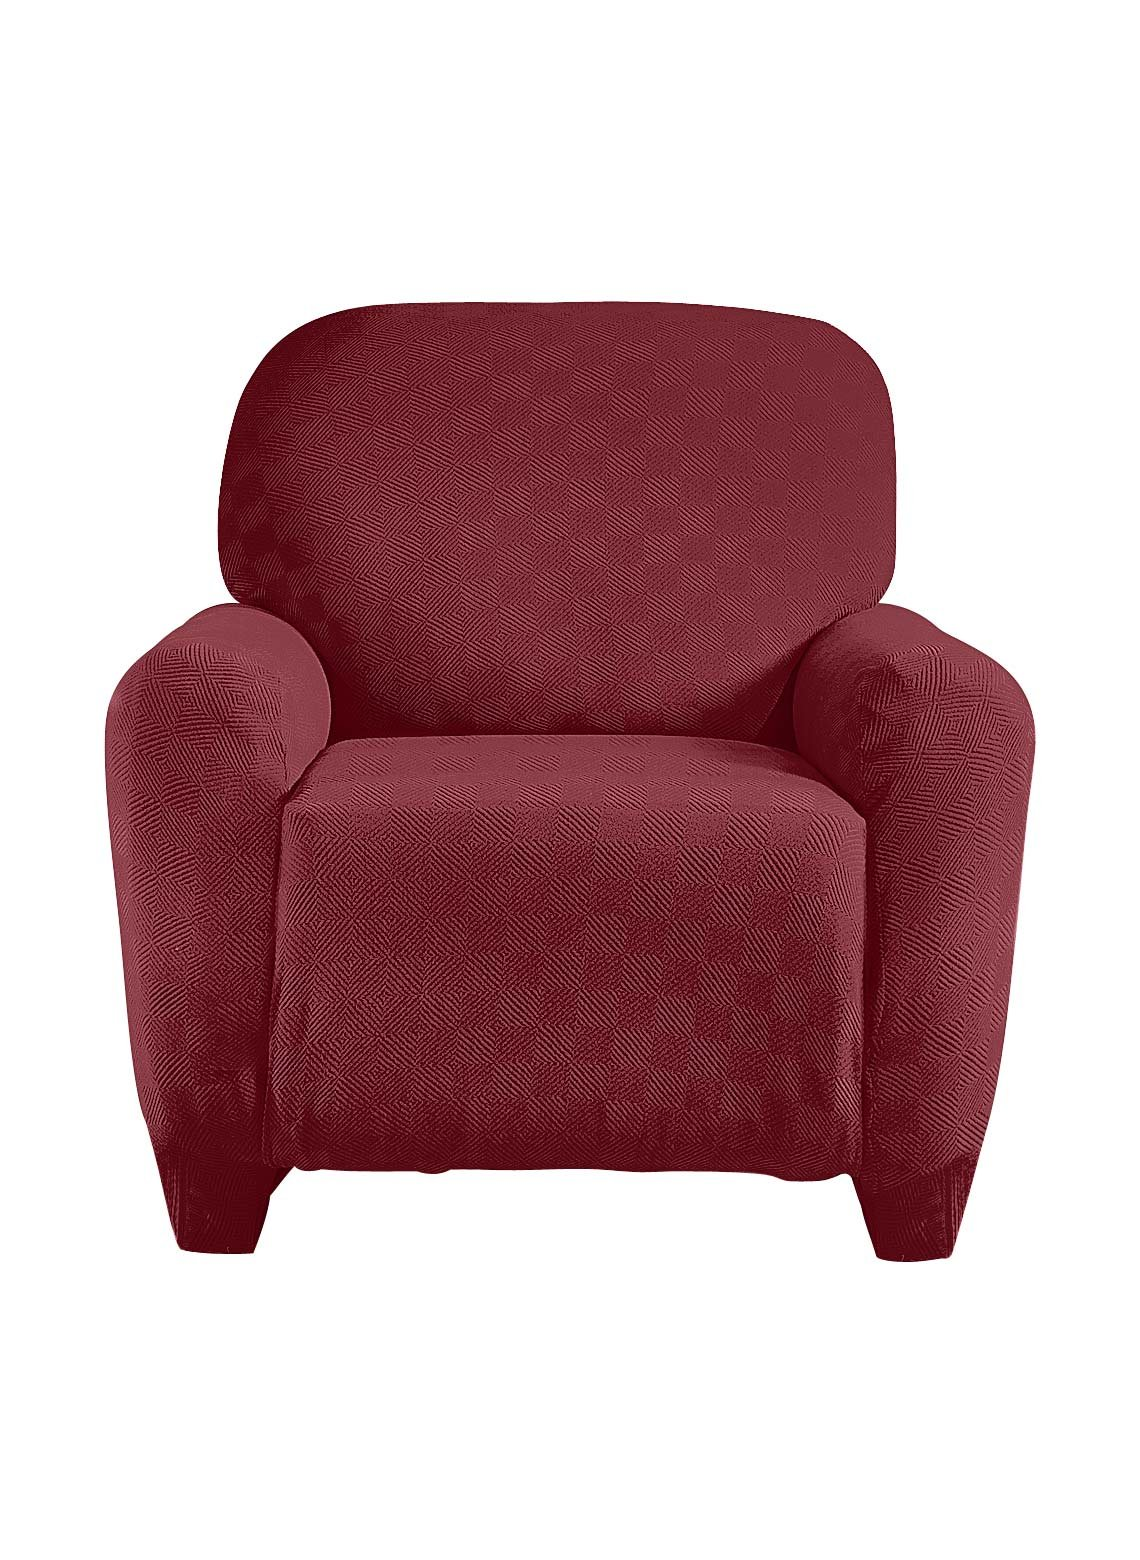 Madison Check-LGRECL-BU Checkerboard Large Recliner Slipcover, Larger Recliner, Burgundy